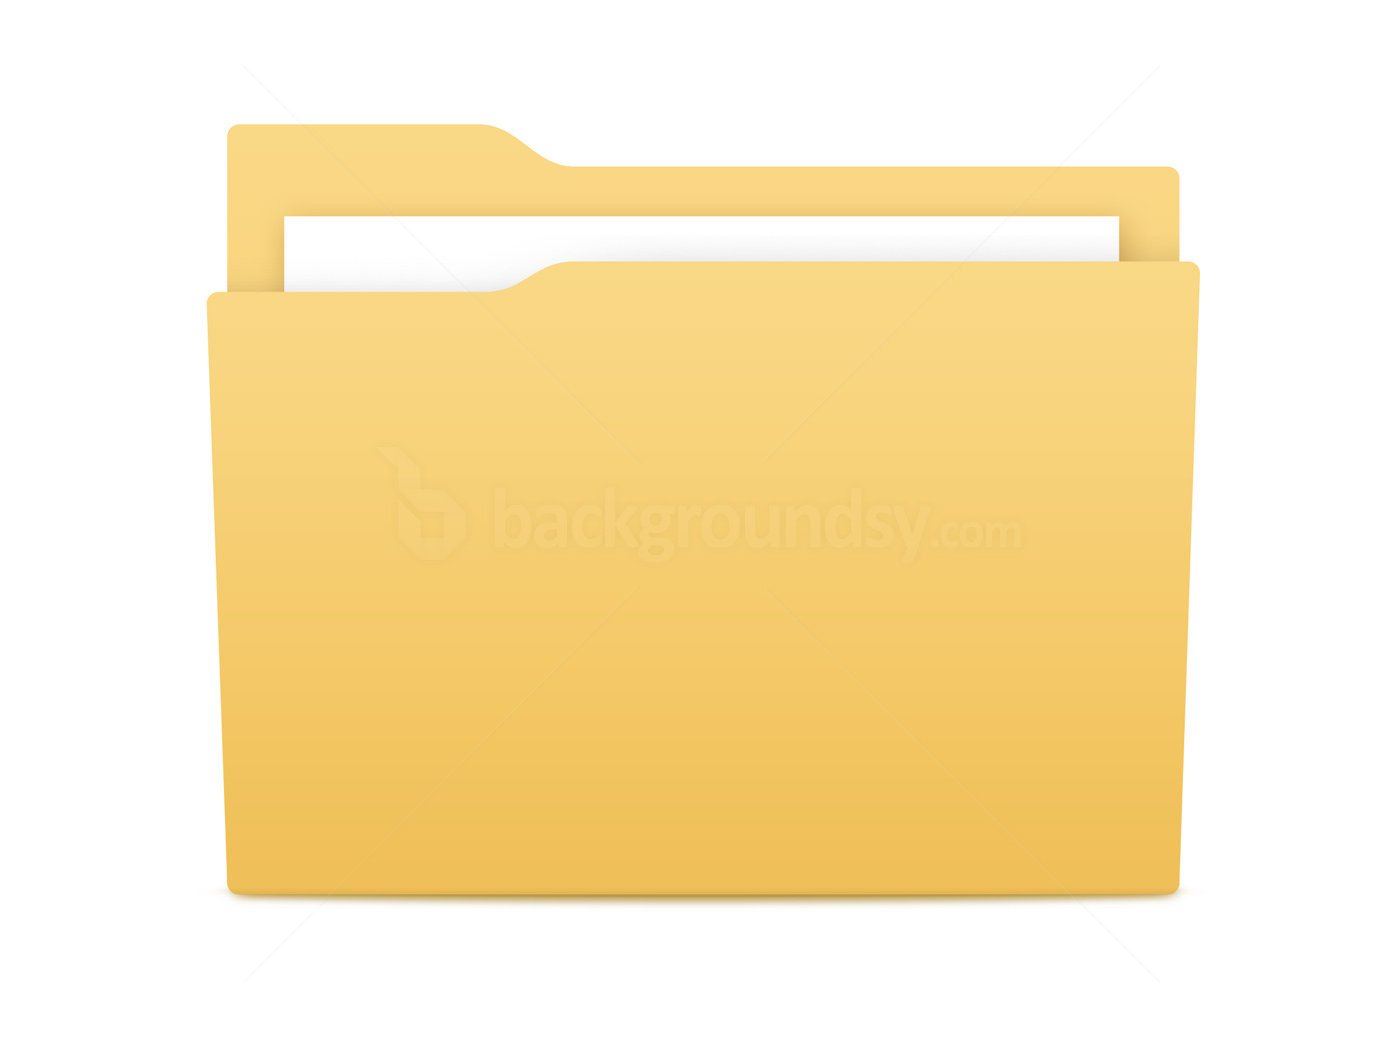 8 School Folder Icon Images